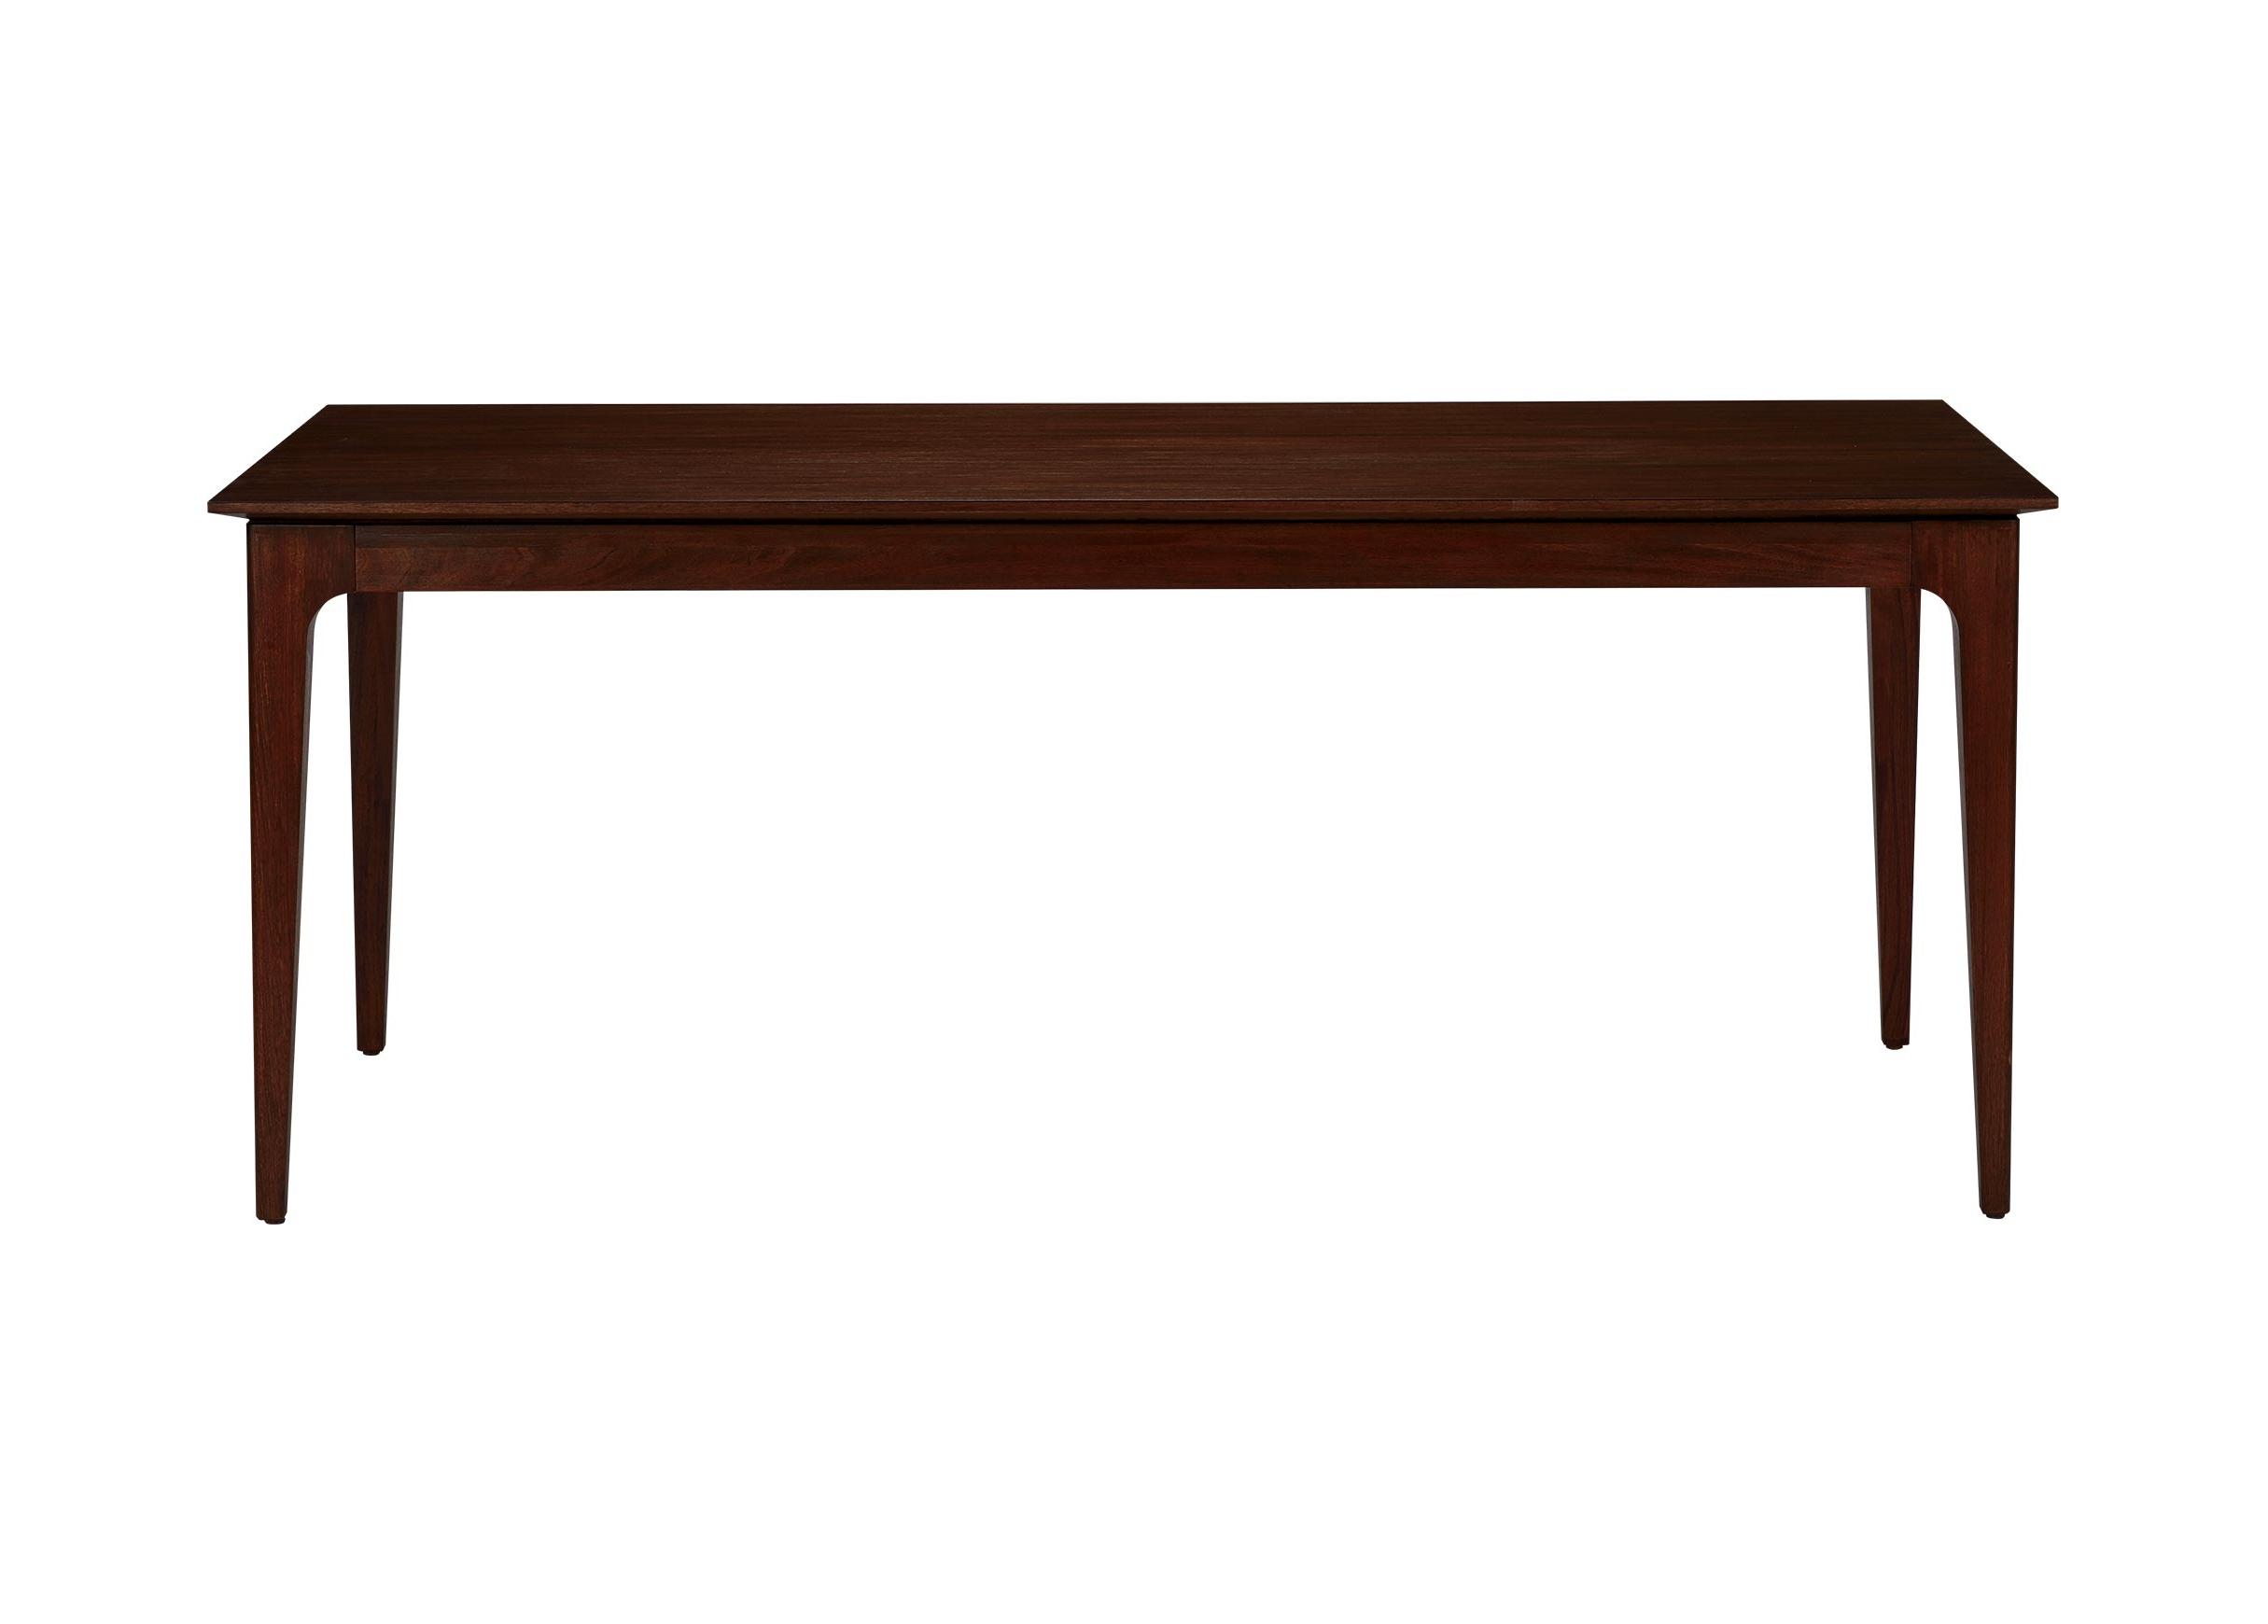 Ethan Allen Dining Within Transitional Rectangular Dining Tables (View 28 of 30)